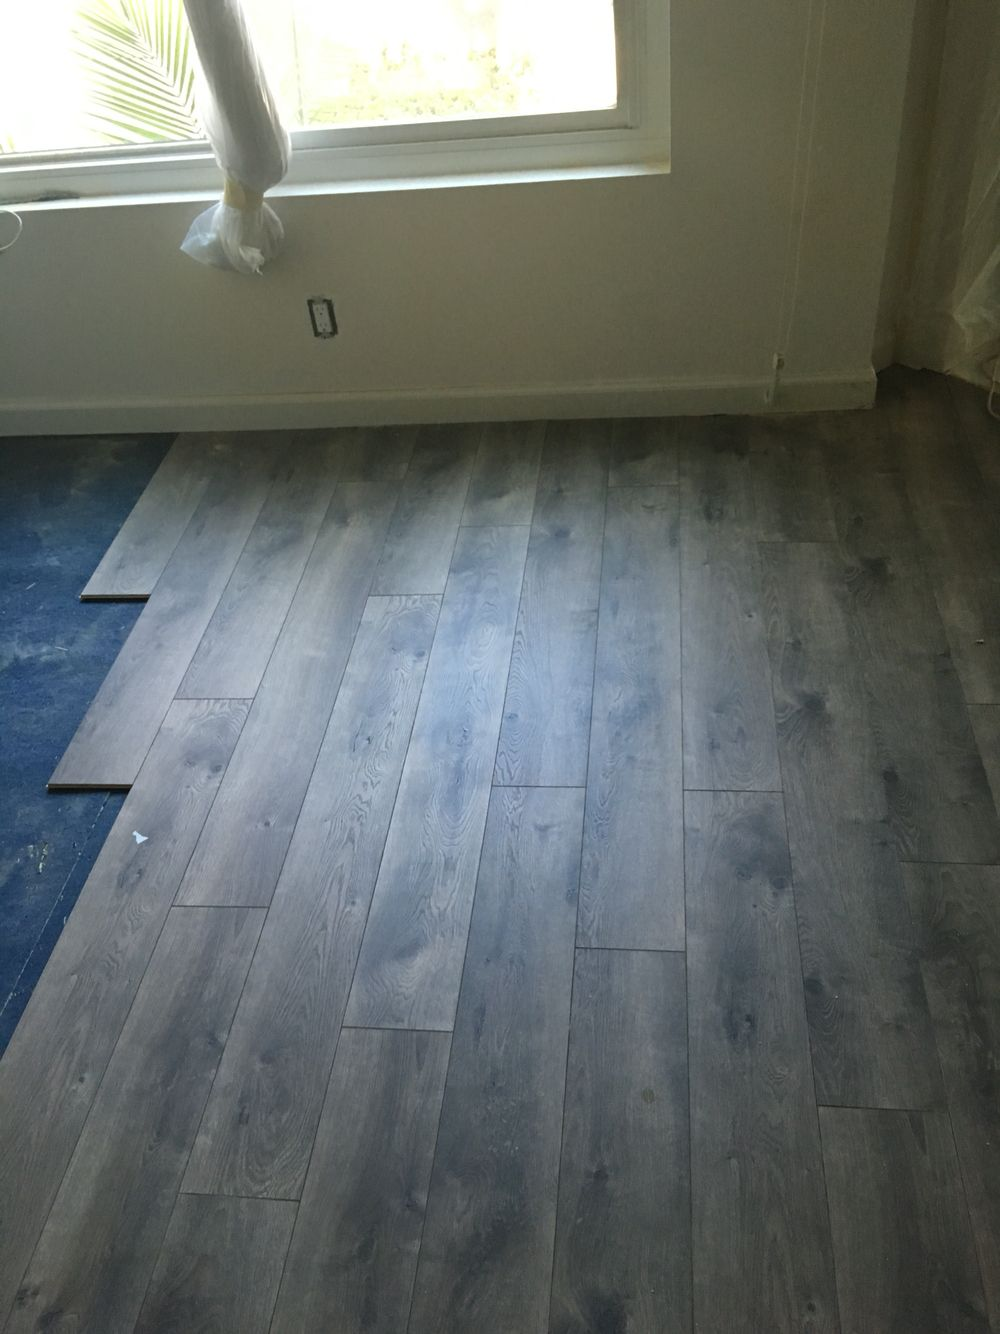 Pergo XP Southern Grey Oak Laminate flooring Home Depot | home ideas ...